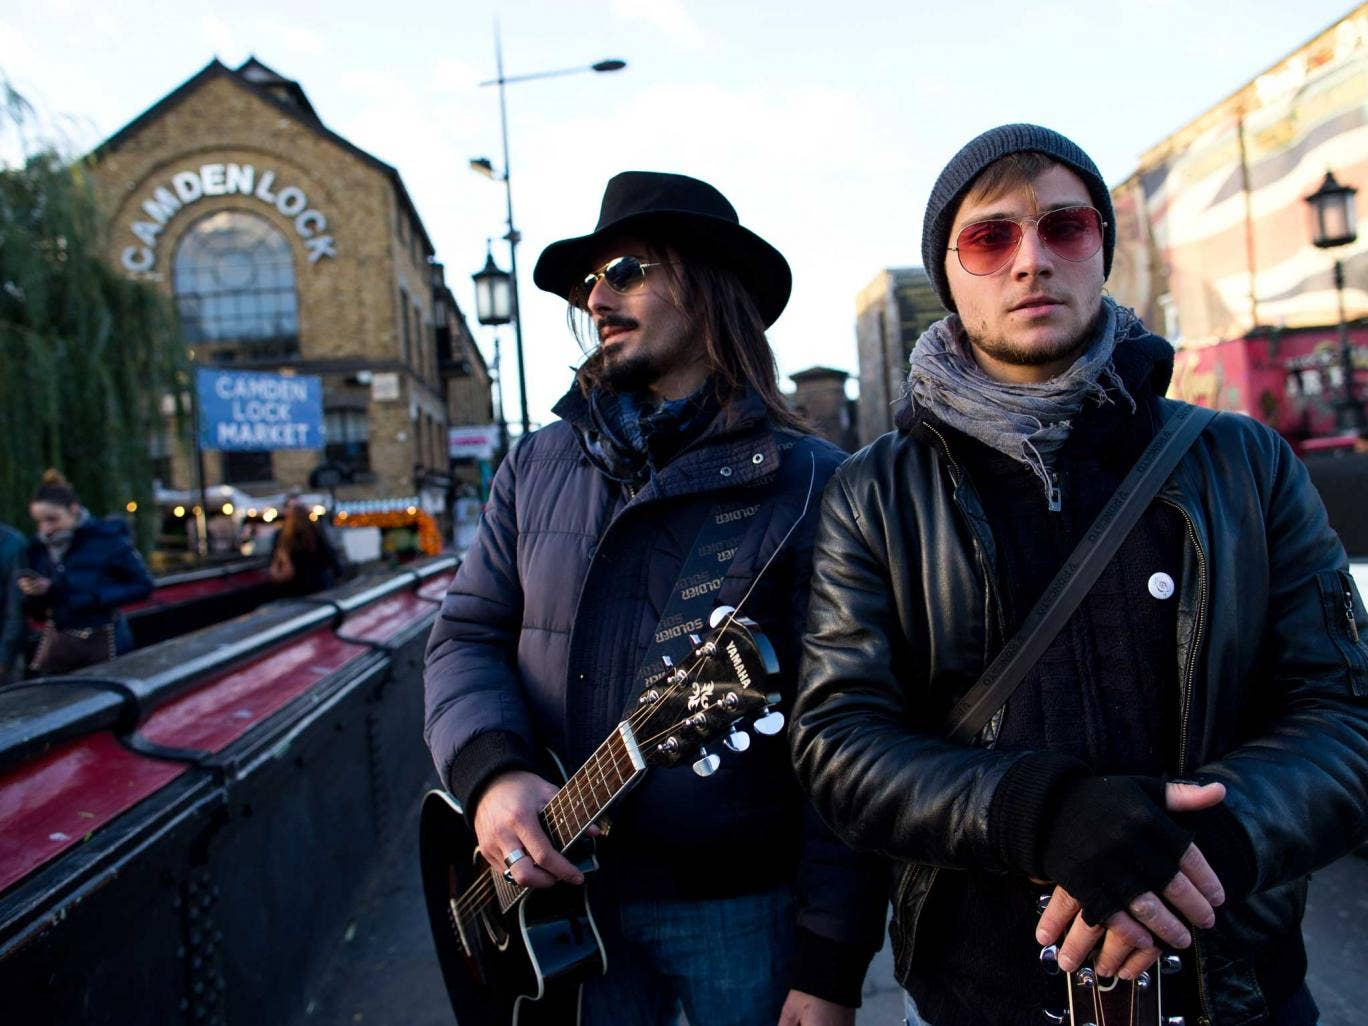 Buskers perform in Camden